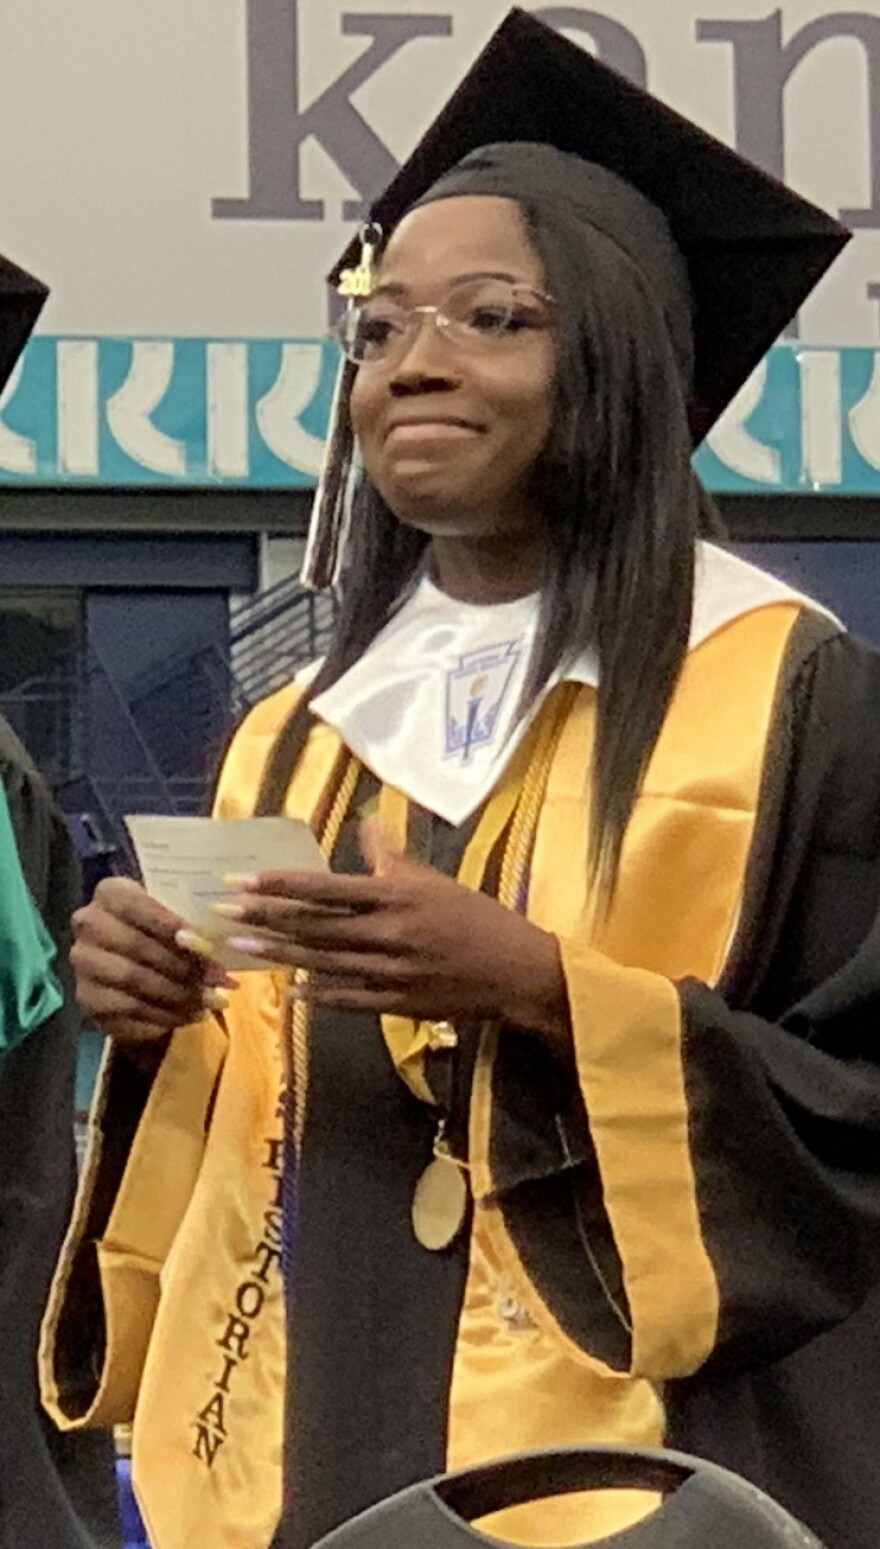 Shadine Henry smiles on stage at her graduation ceremony, May 25, 2019